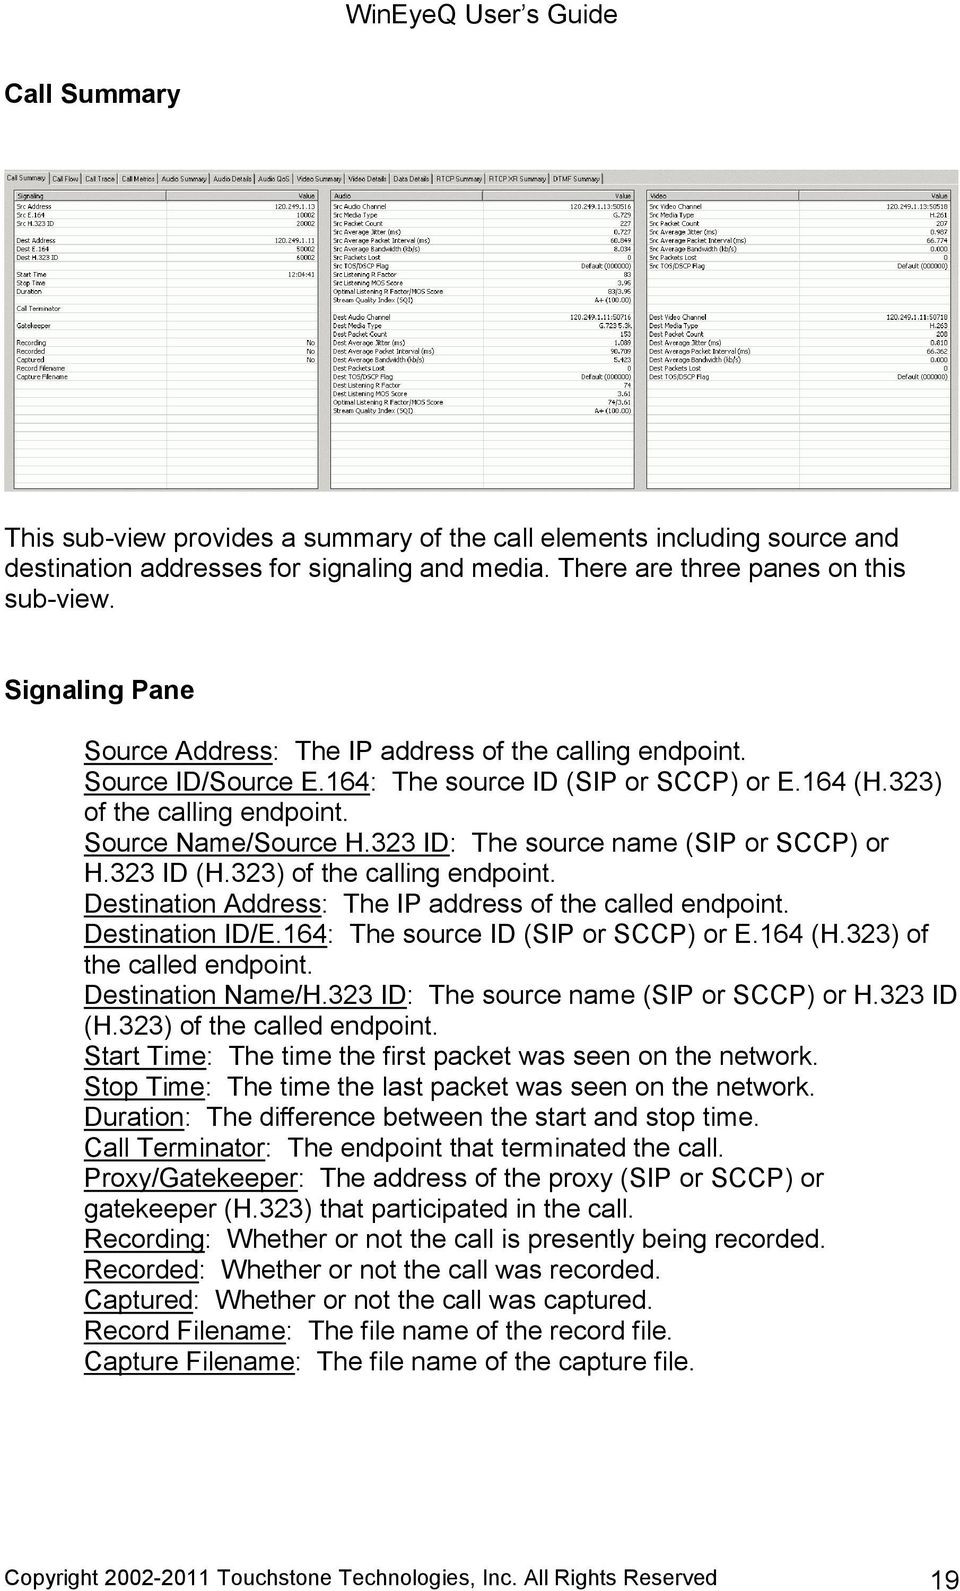 323 ID: The source name (SIP or SCCP) or H.323 ID (H.323) of the calling endpoint. Destination Address: The IP address of the called endpoint. Destination ID/E.164: The source ID (SIP or SCCP) or E.